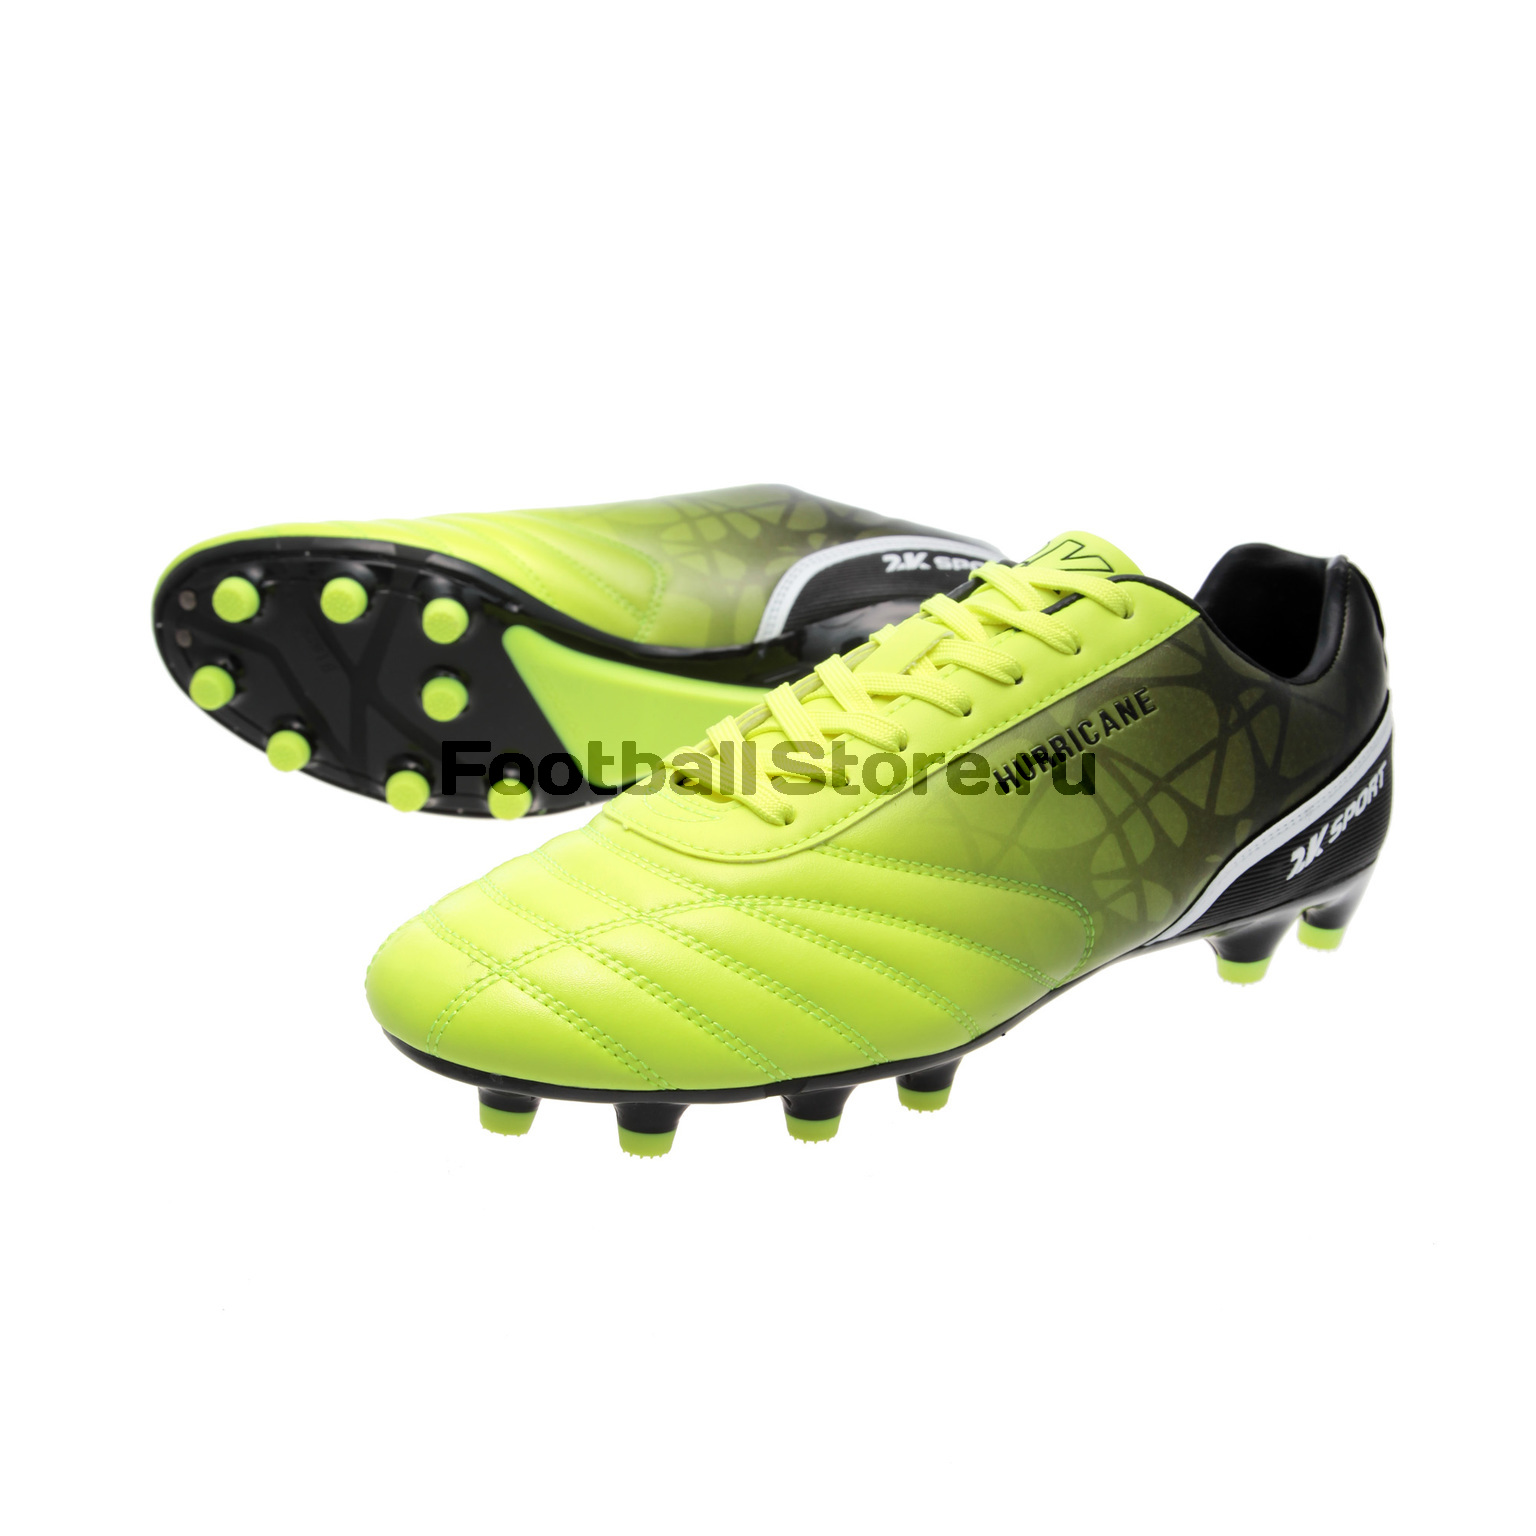 Бутсы 2K Sport Hurricane FG Lime/Black 125326